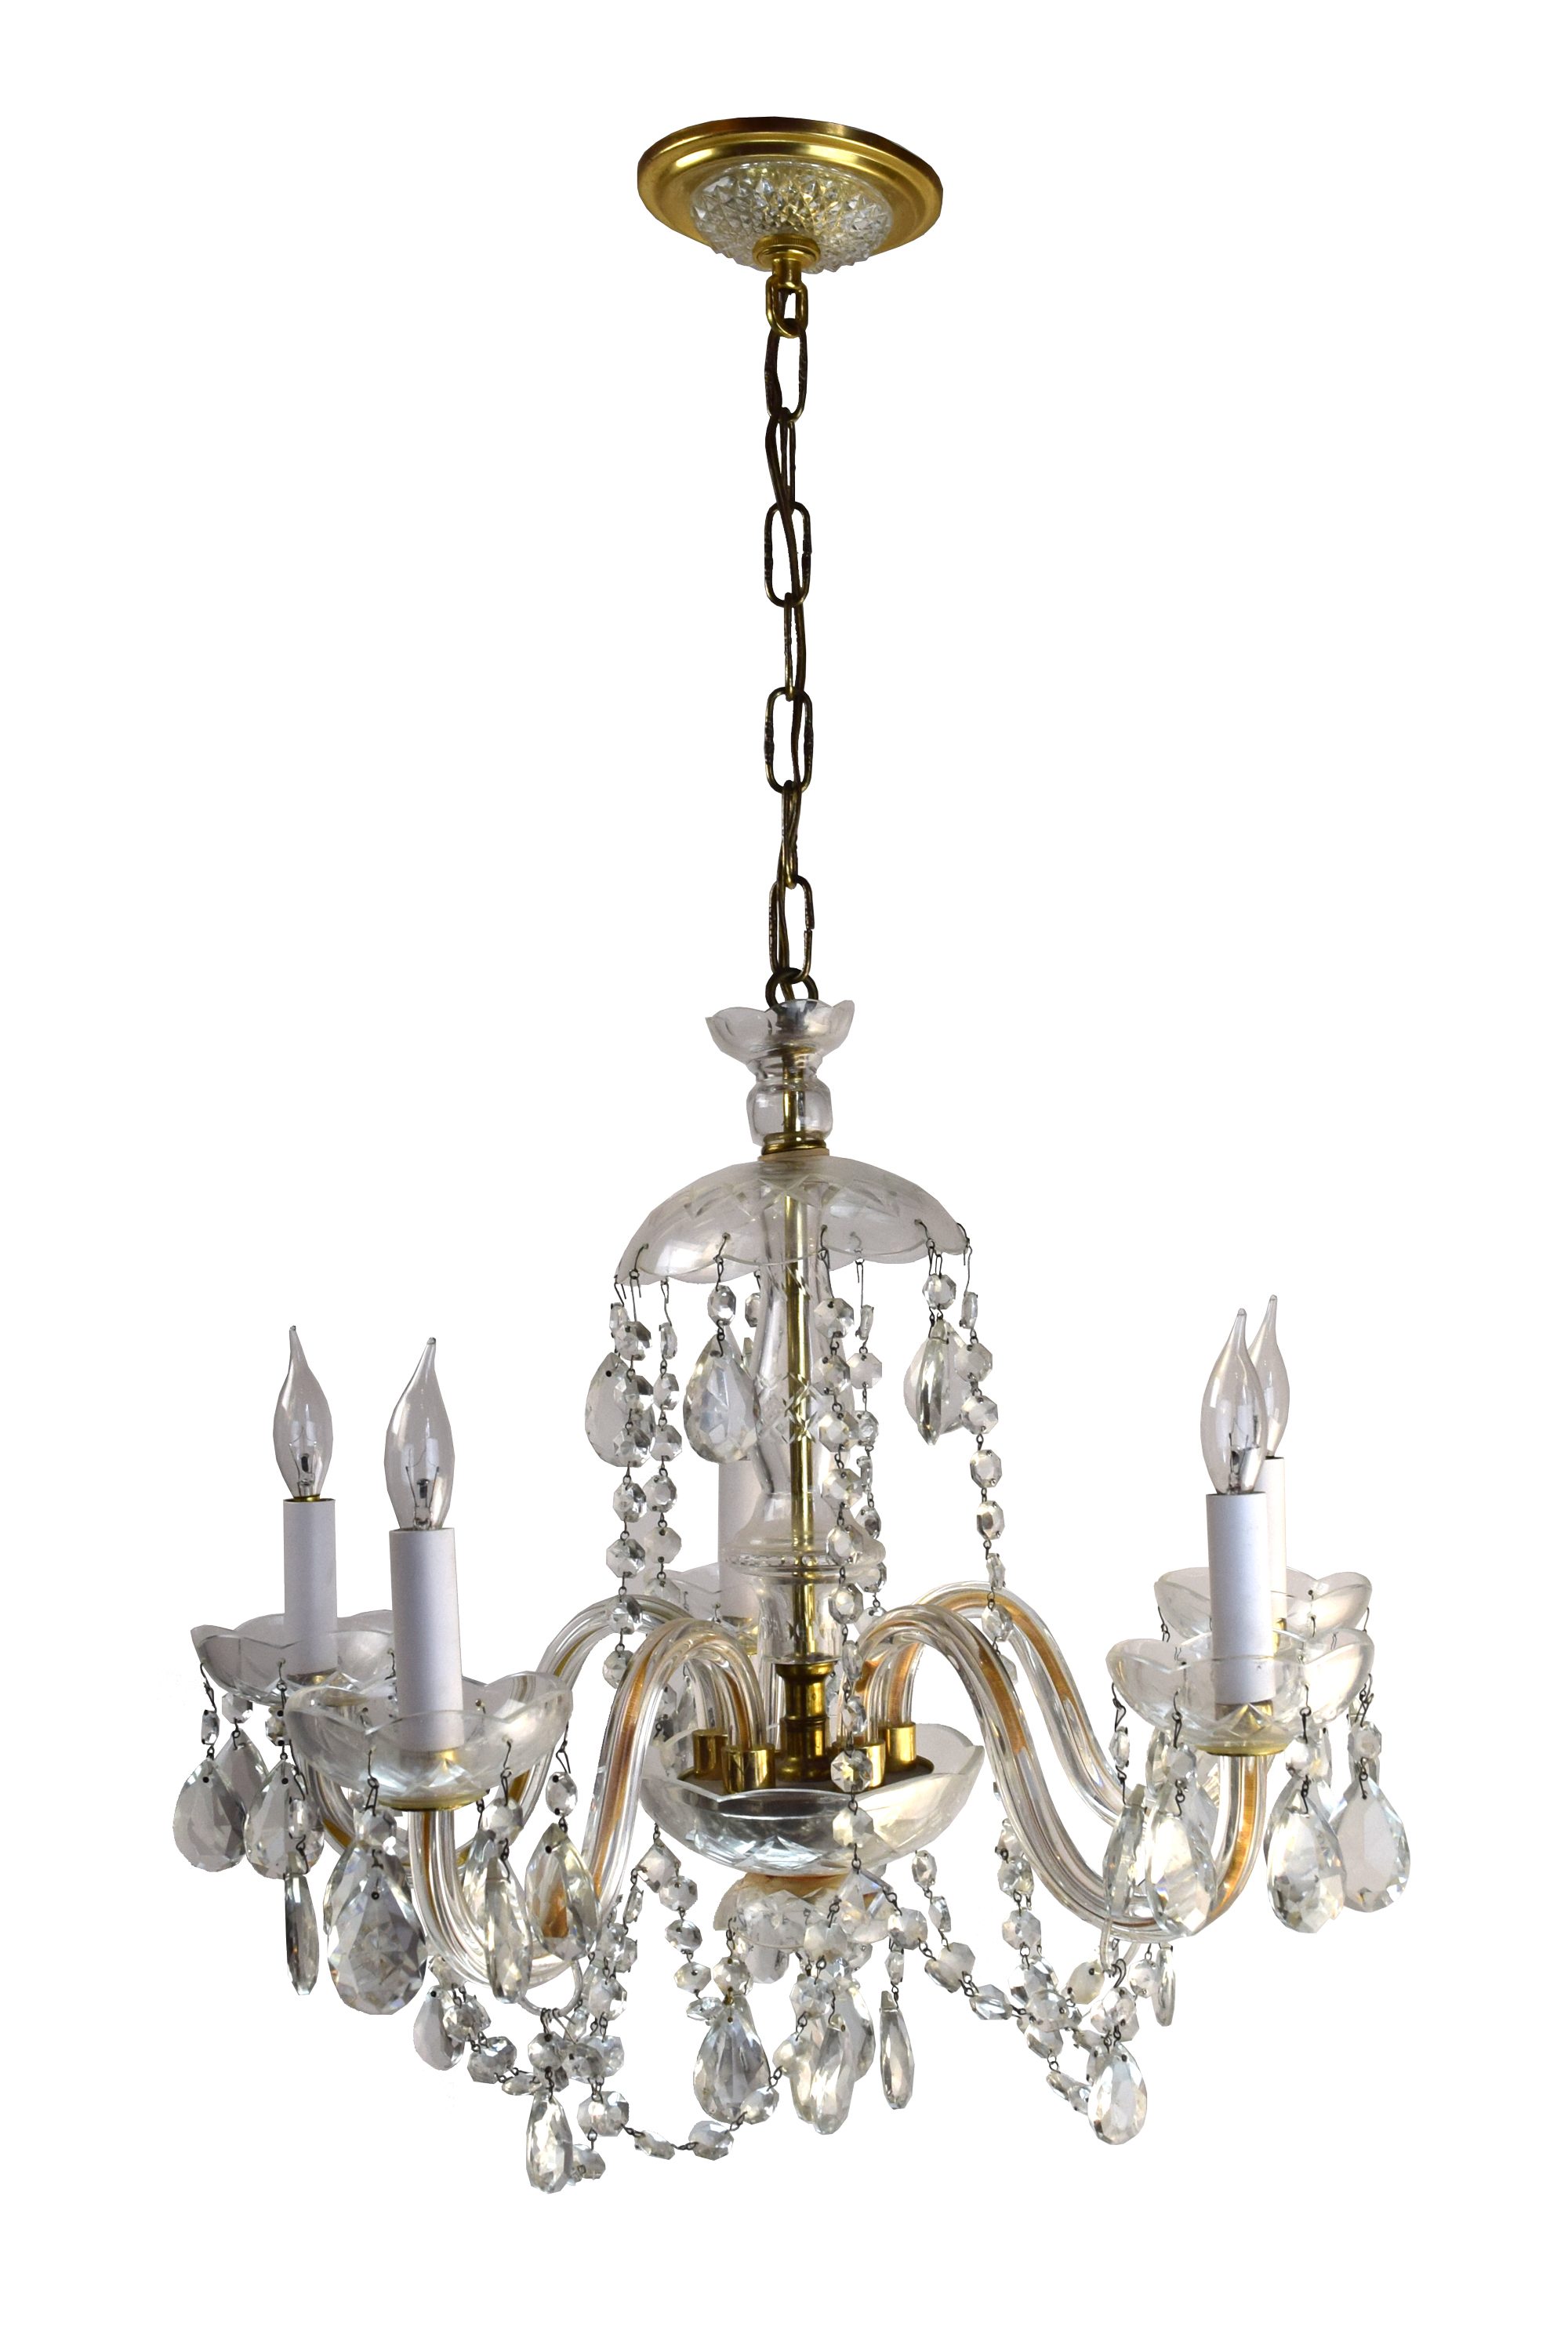 46668-5-candle-chandelier-with-small-glass-flowers.jpg